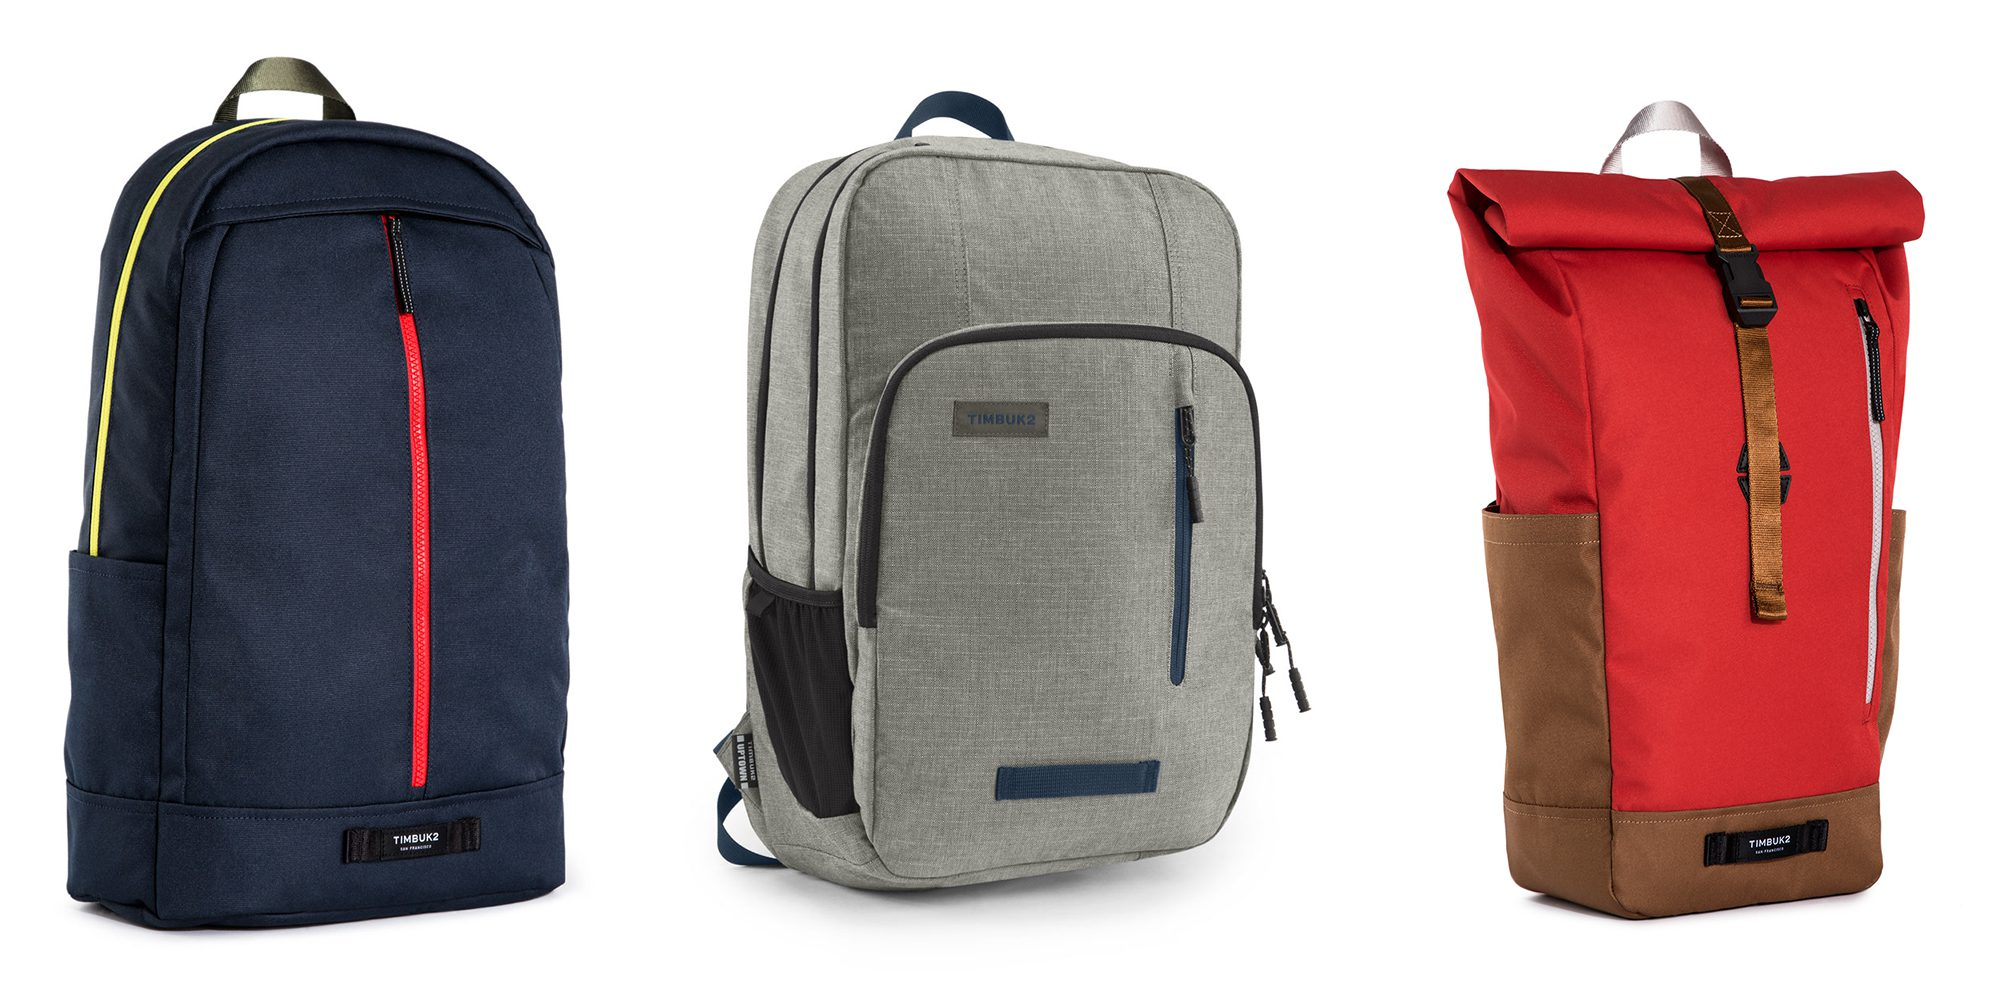 timbuk2-48-sale-deal